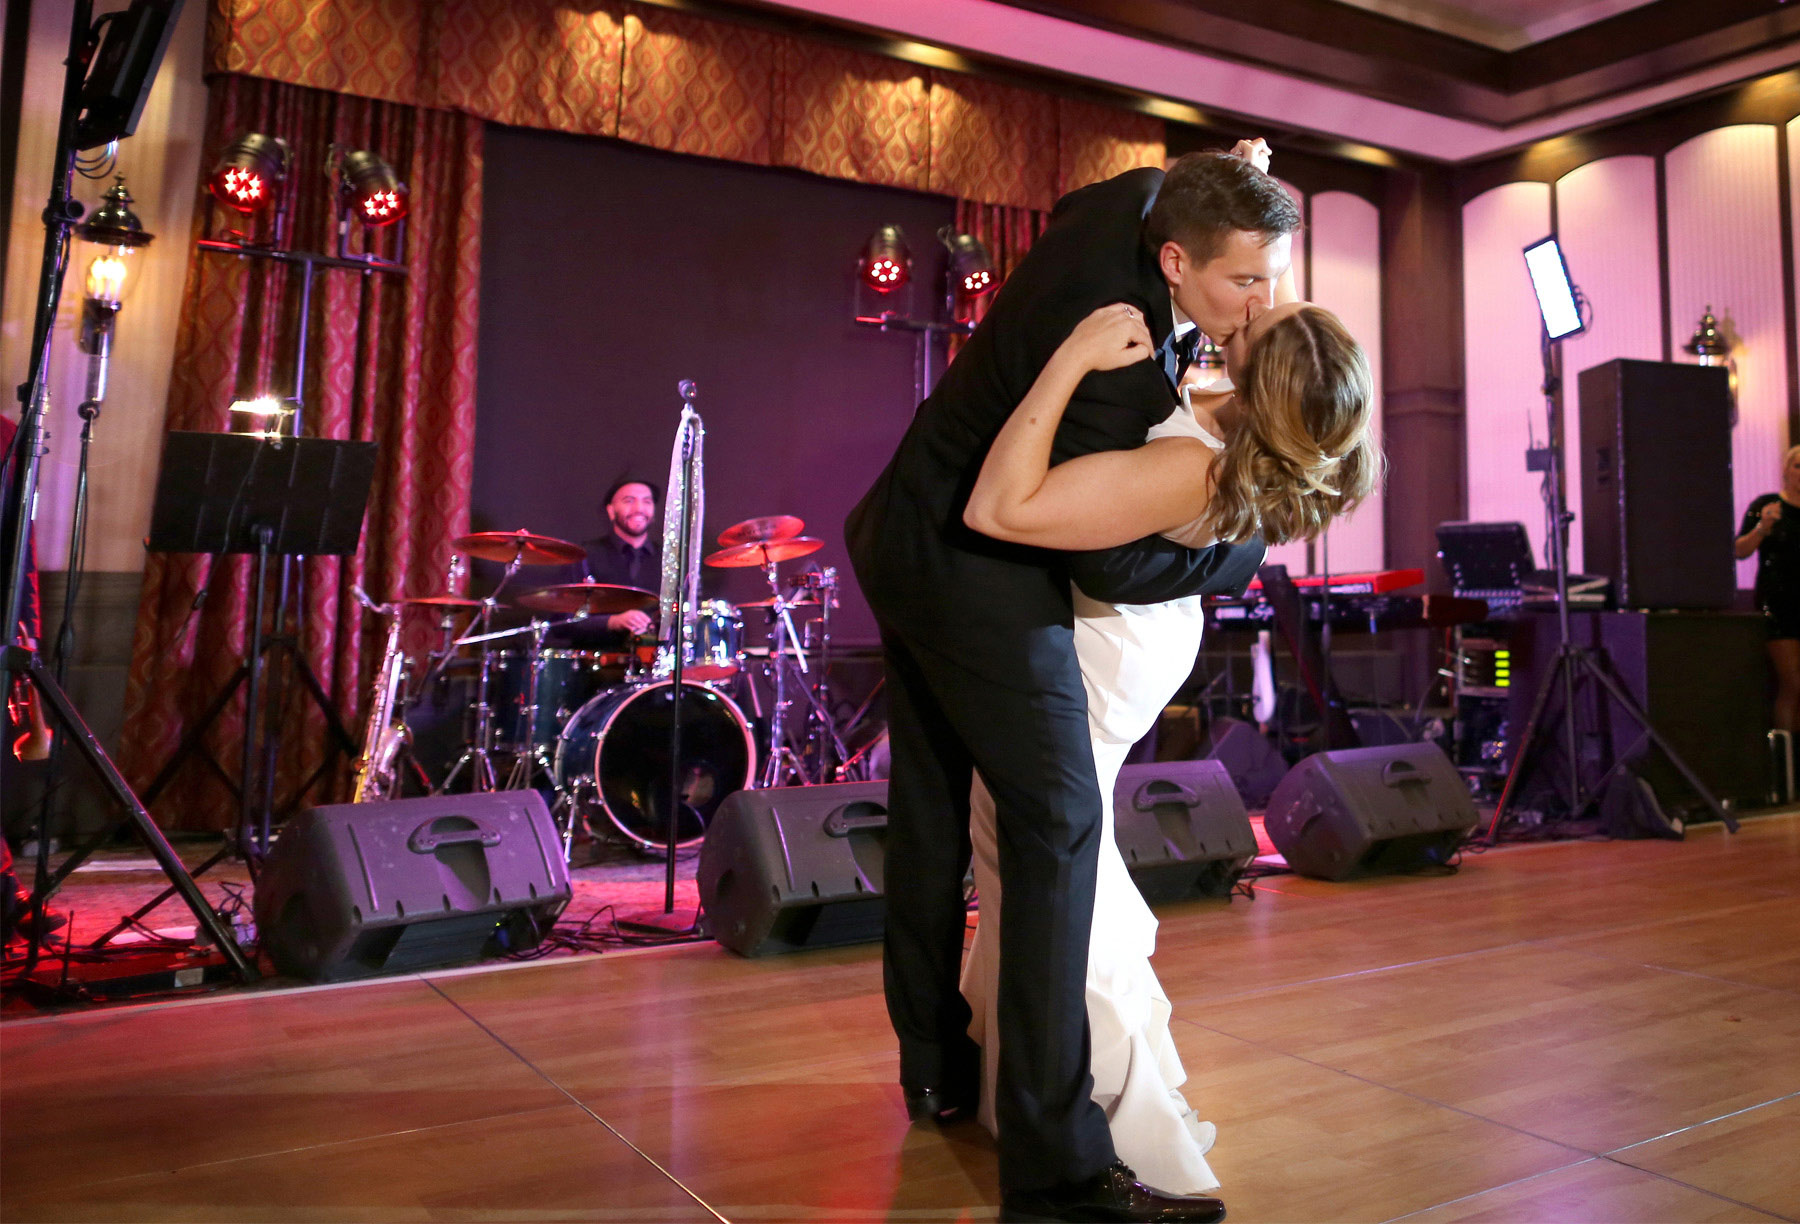 20-Saint-Paul-Minnesota-Wedding-Photographer-by-Andrew-Vick-Photography-Fall-Autumn-Town-and-Country-Club-Reception-Bride-Groom-Dance-Dip-Kiss-Kathryn-and-Sam.jpg